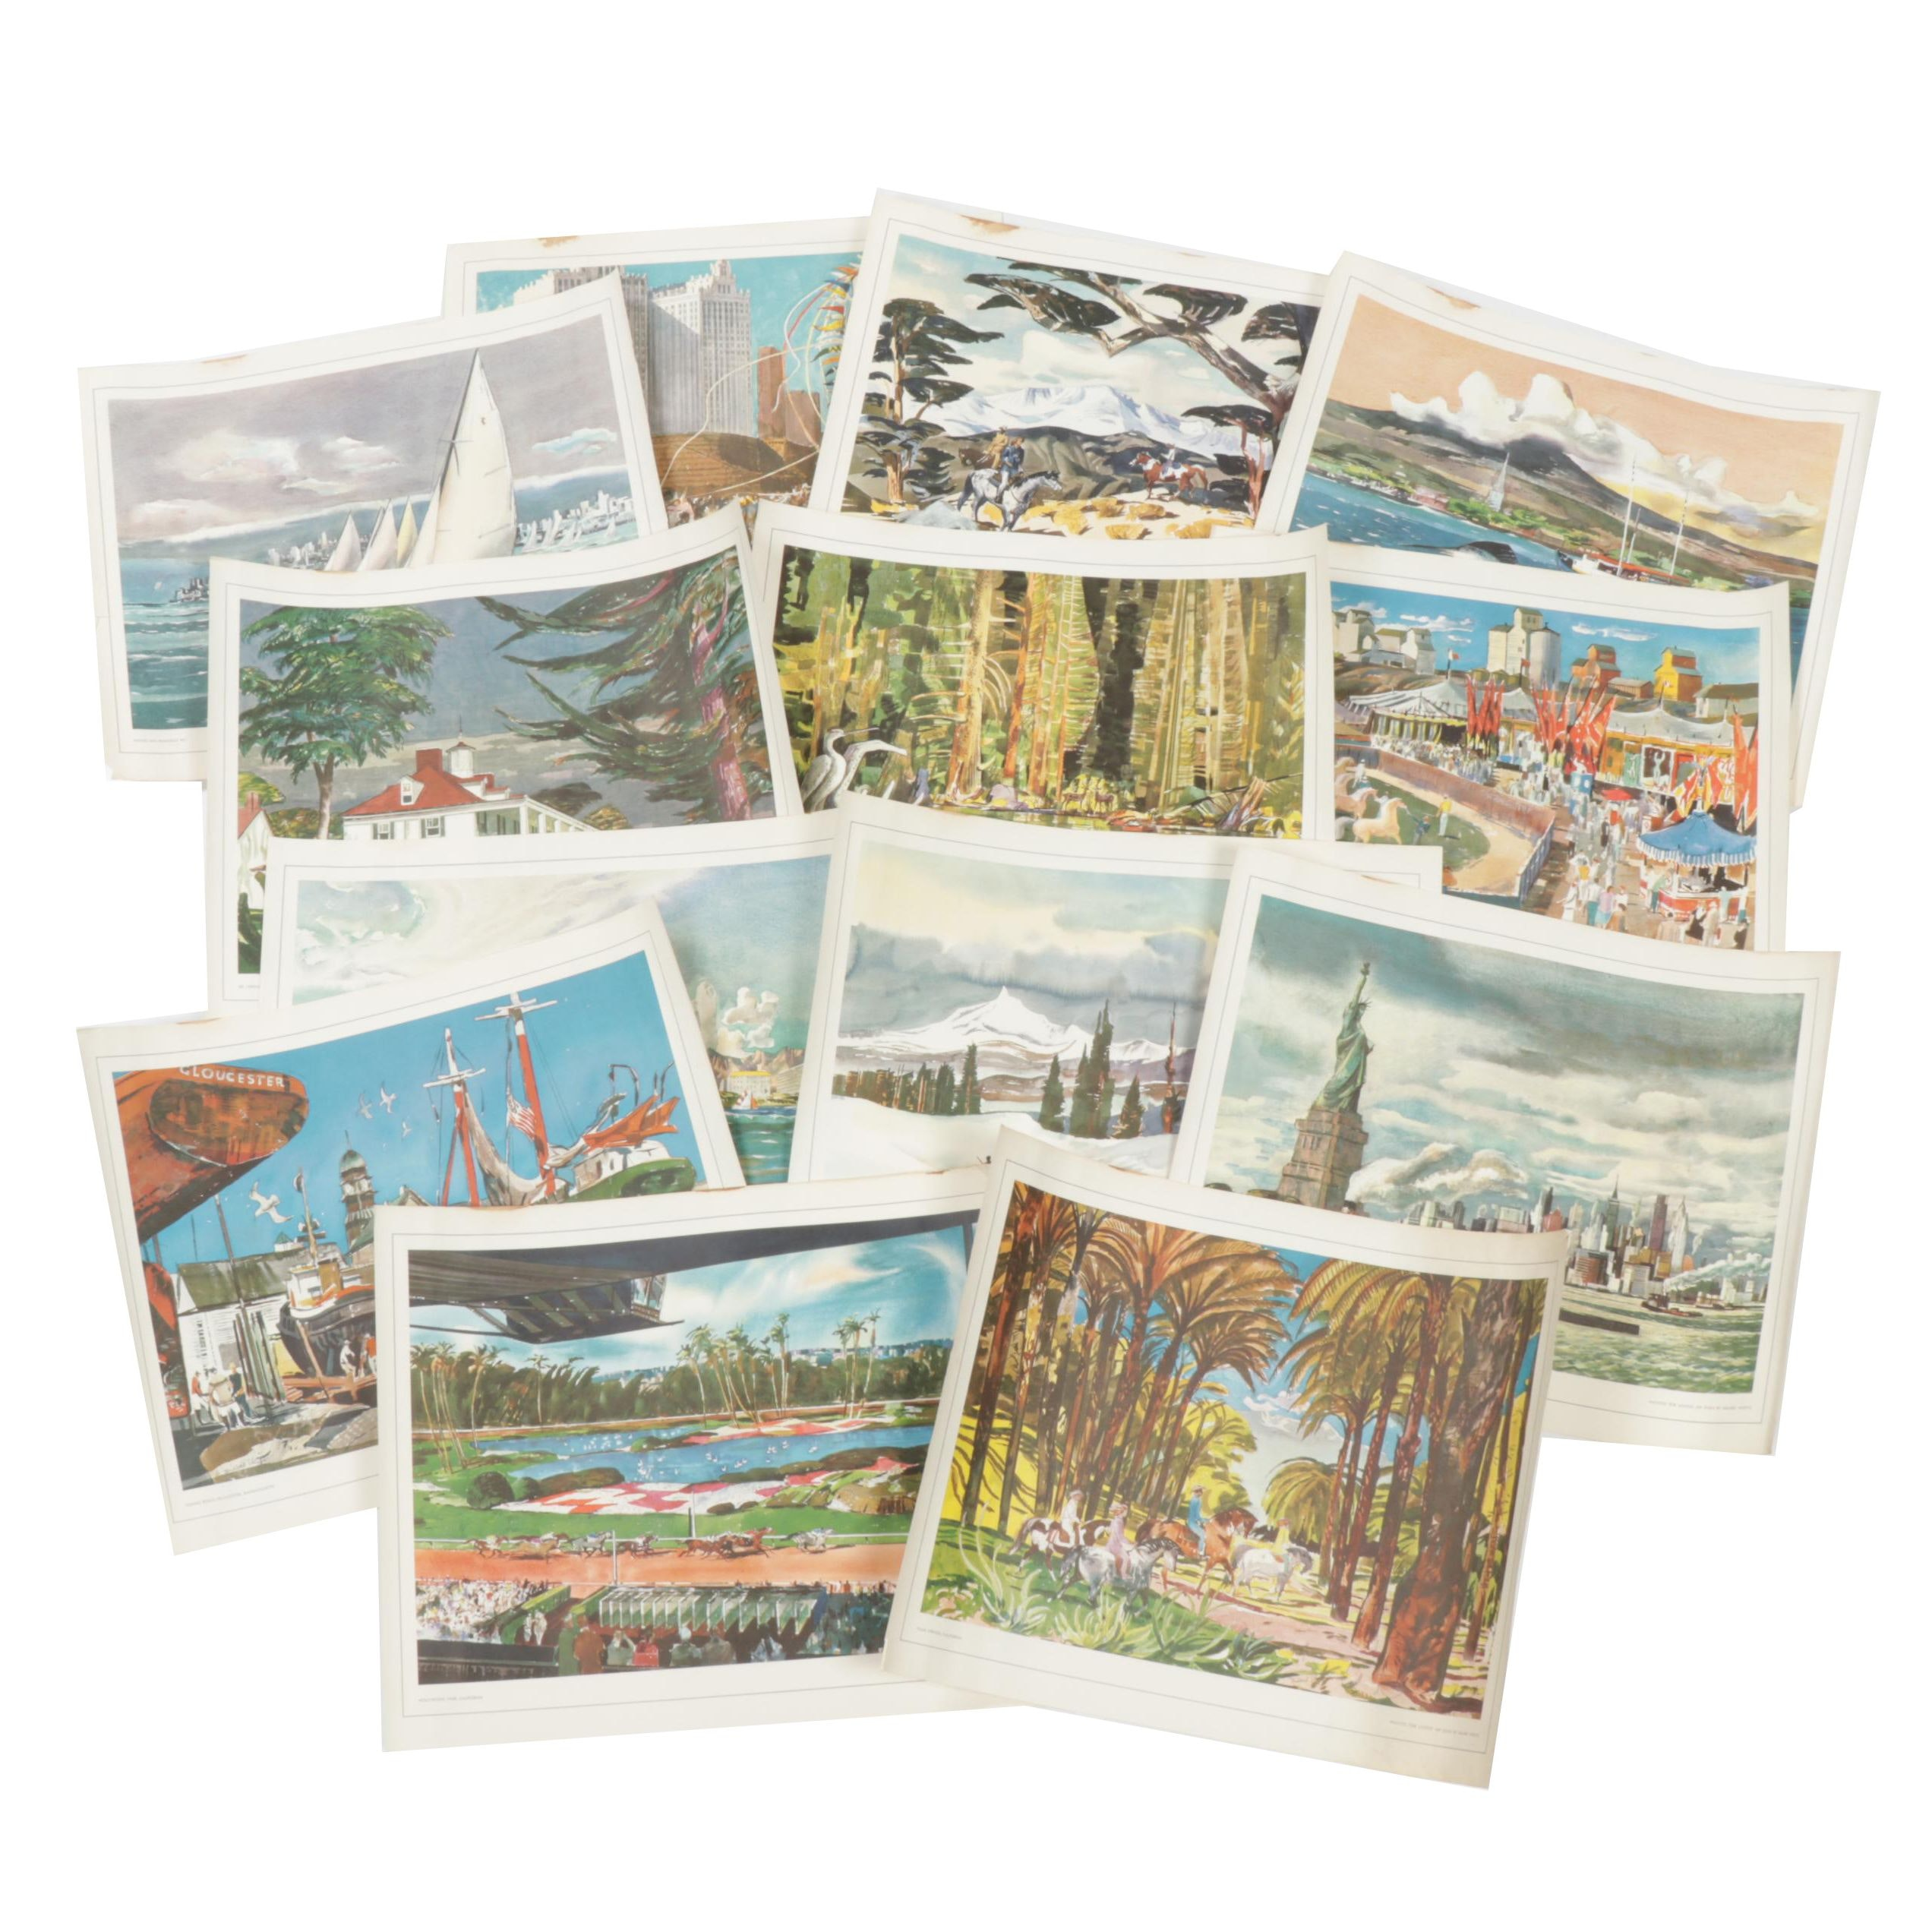 Collection of Landscape Offset Prints by Millard Sheets